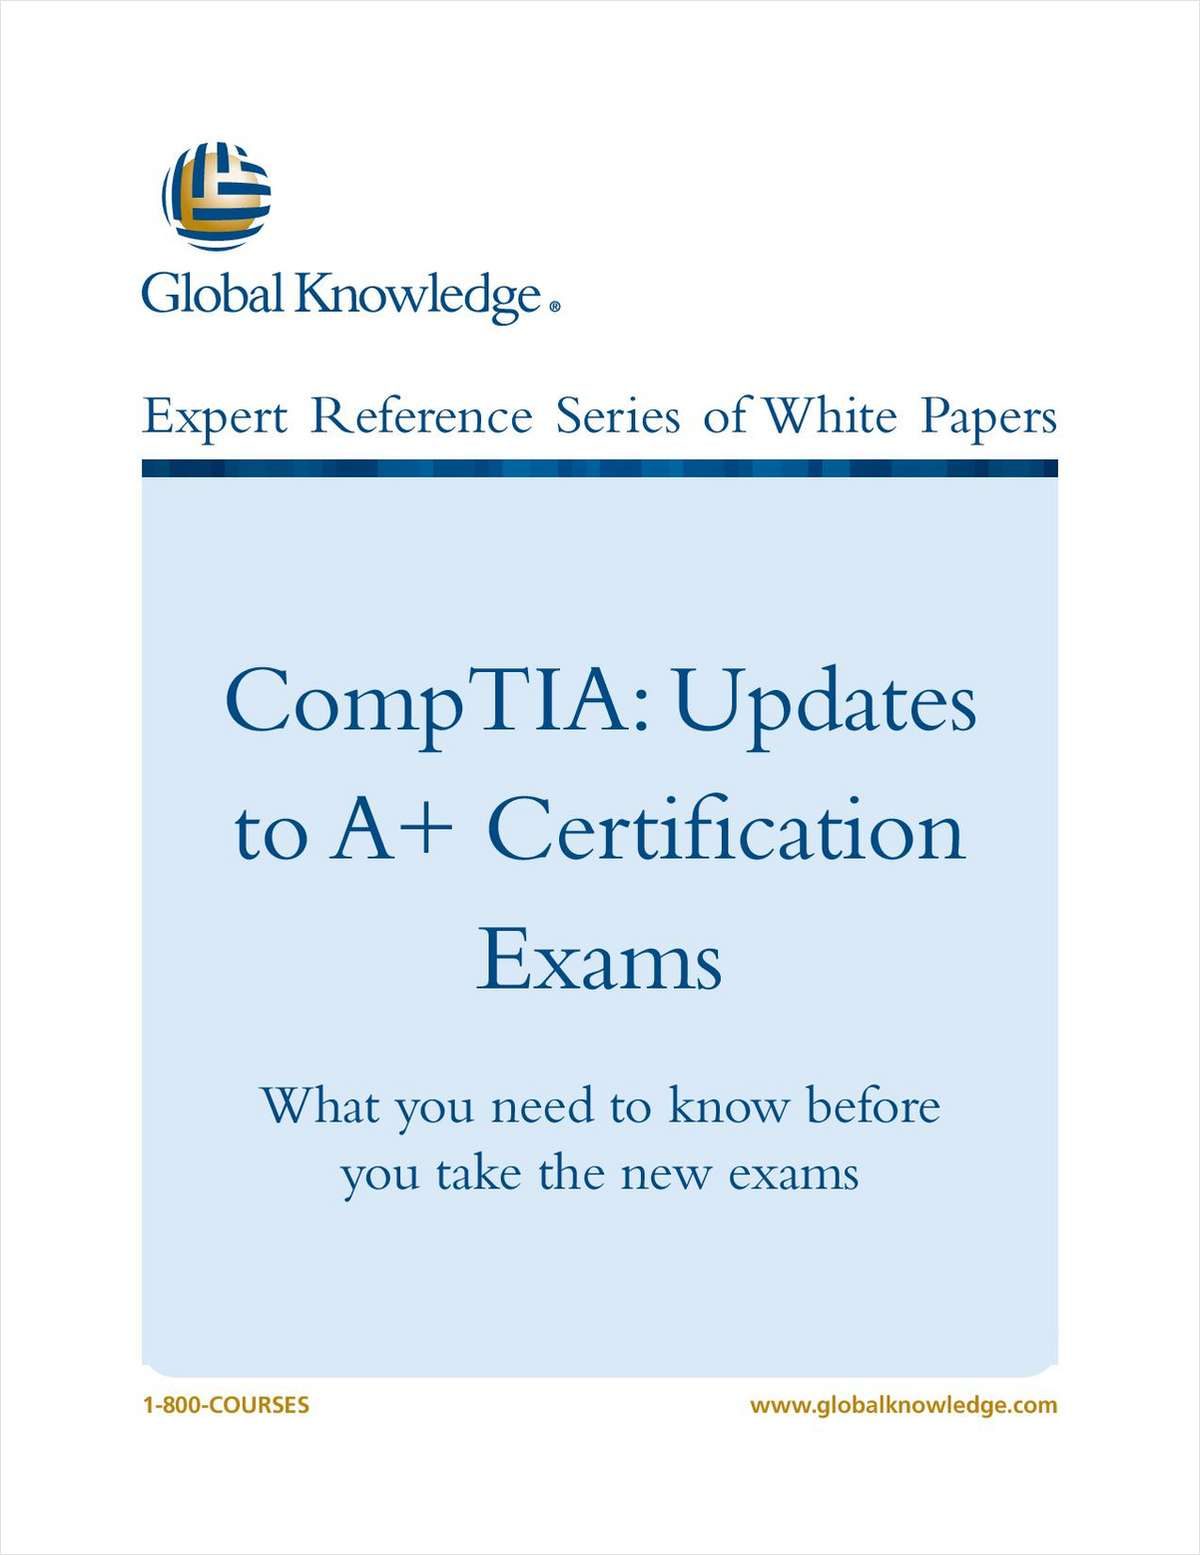 CompTIA: Updates to A+ Certification Exams